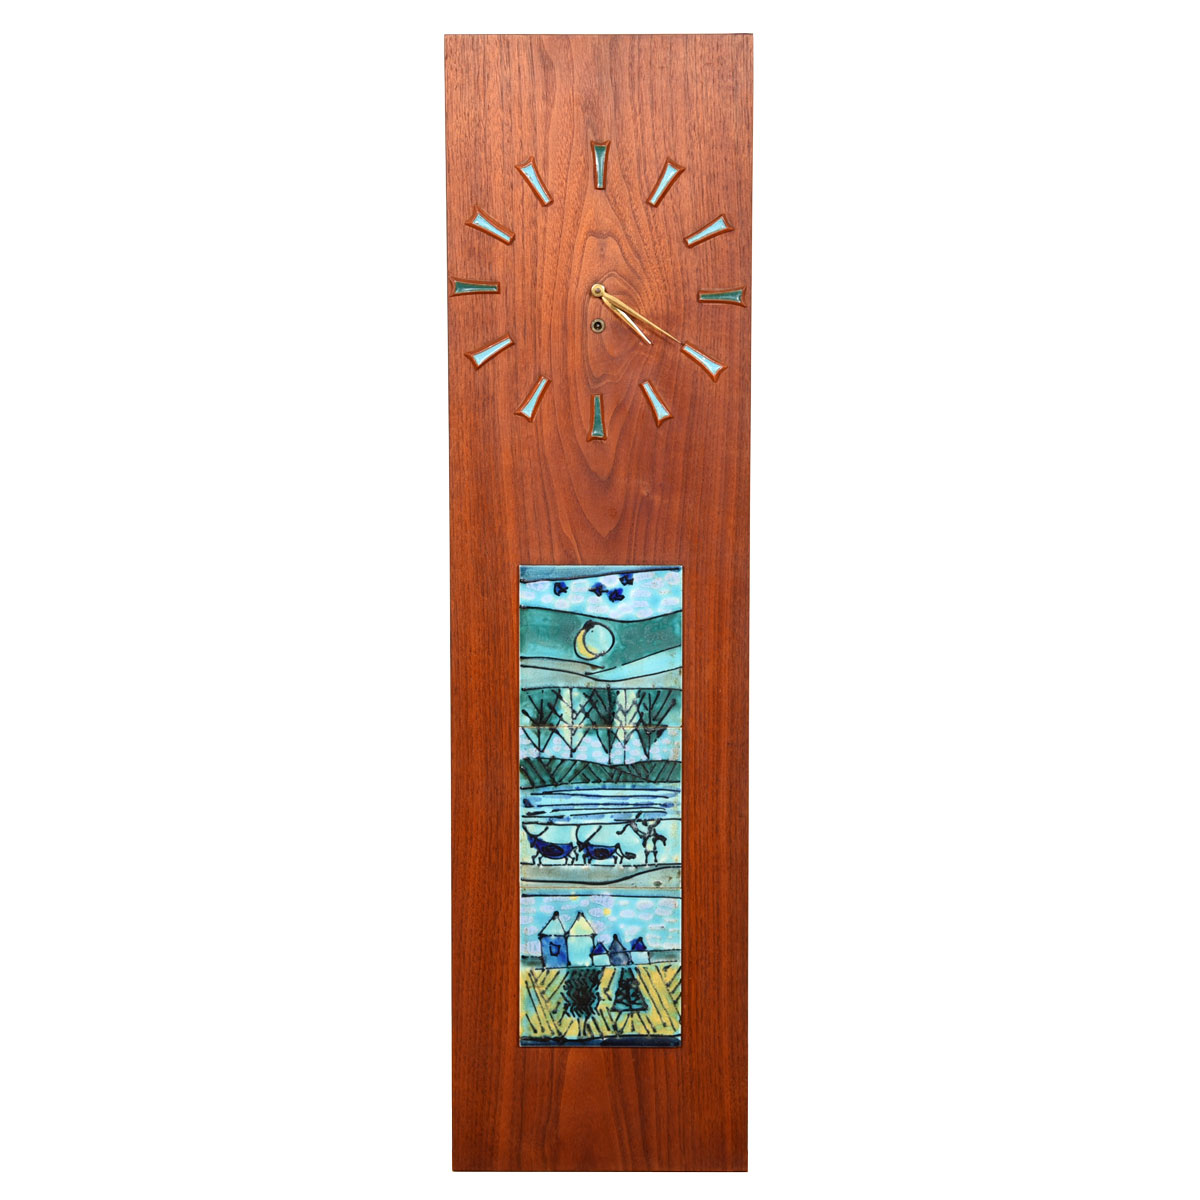 MCM Wall Clock with Decorative Tile on Walnut Panel